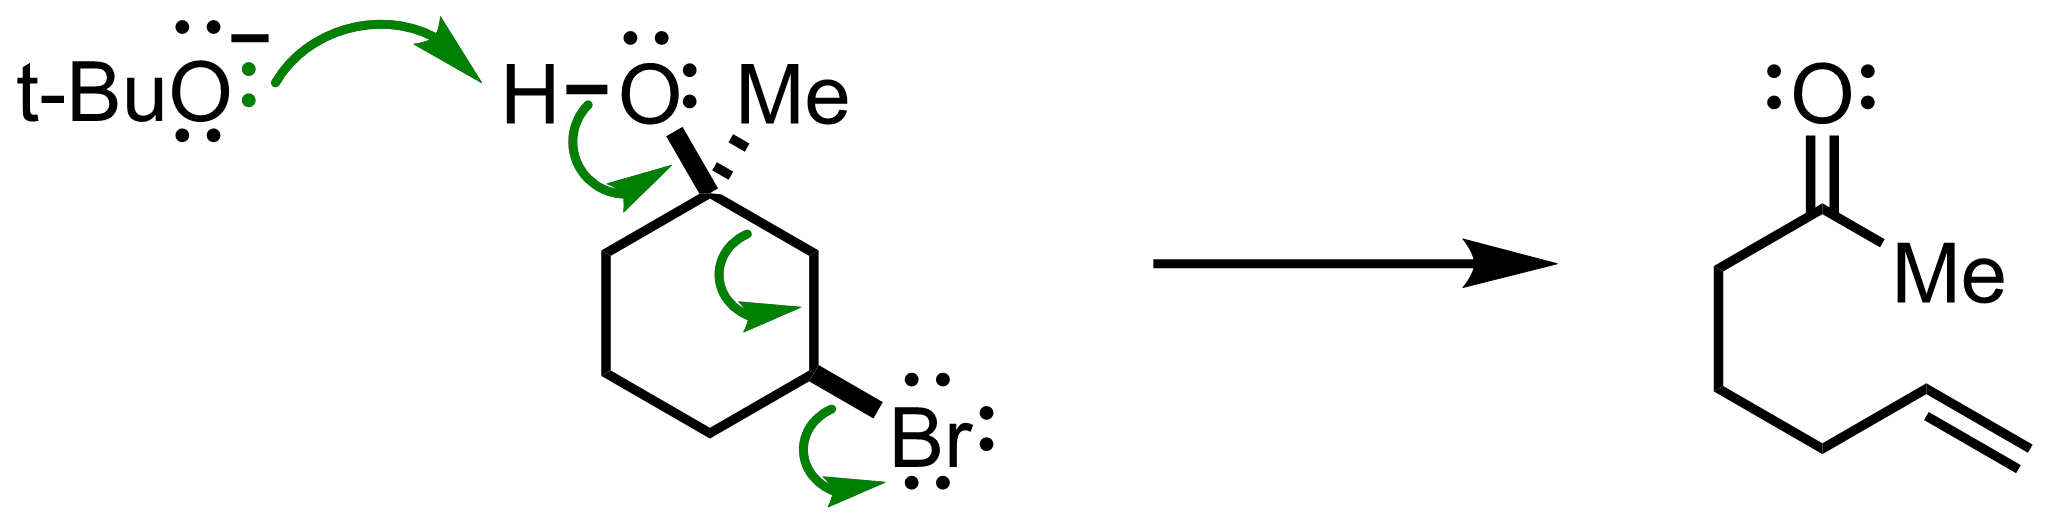 Mechanism of the Grob Fragmentation